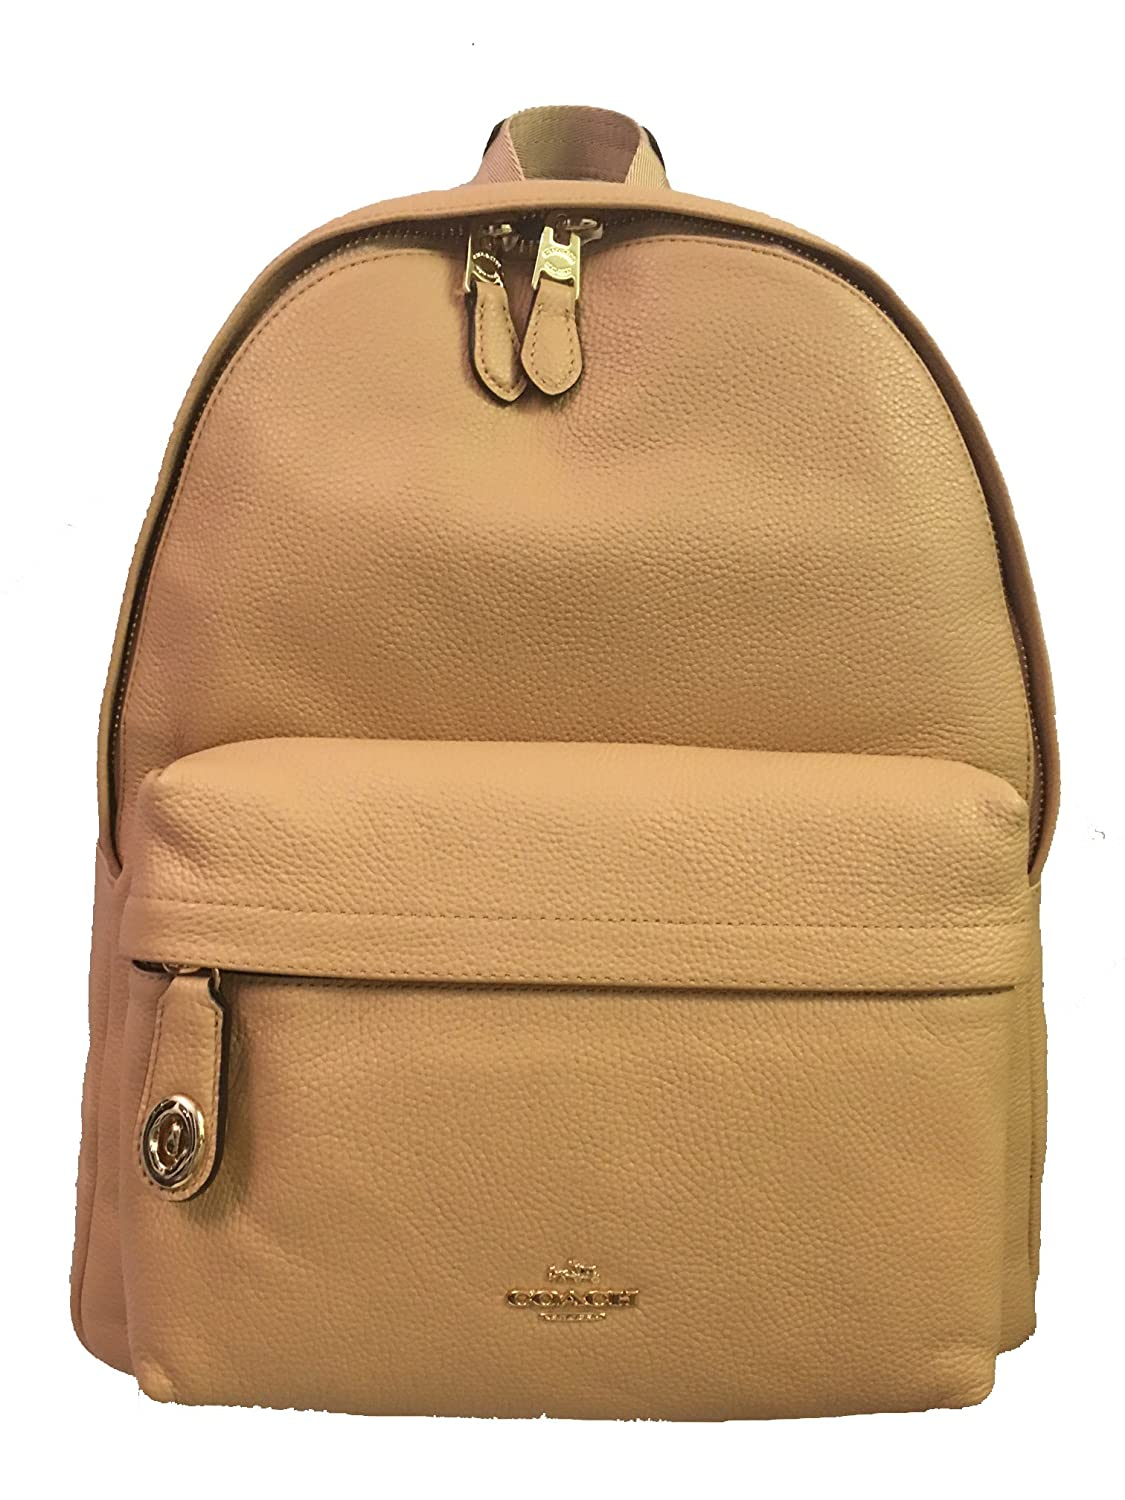 5eede8ff17f03 Amazon.com  Coach Polished Pebbled Leather Campus Backpack Gold Beechwood  Model 37770 LIEQO  Shoes